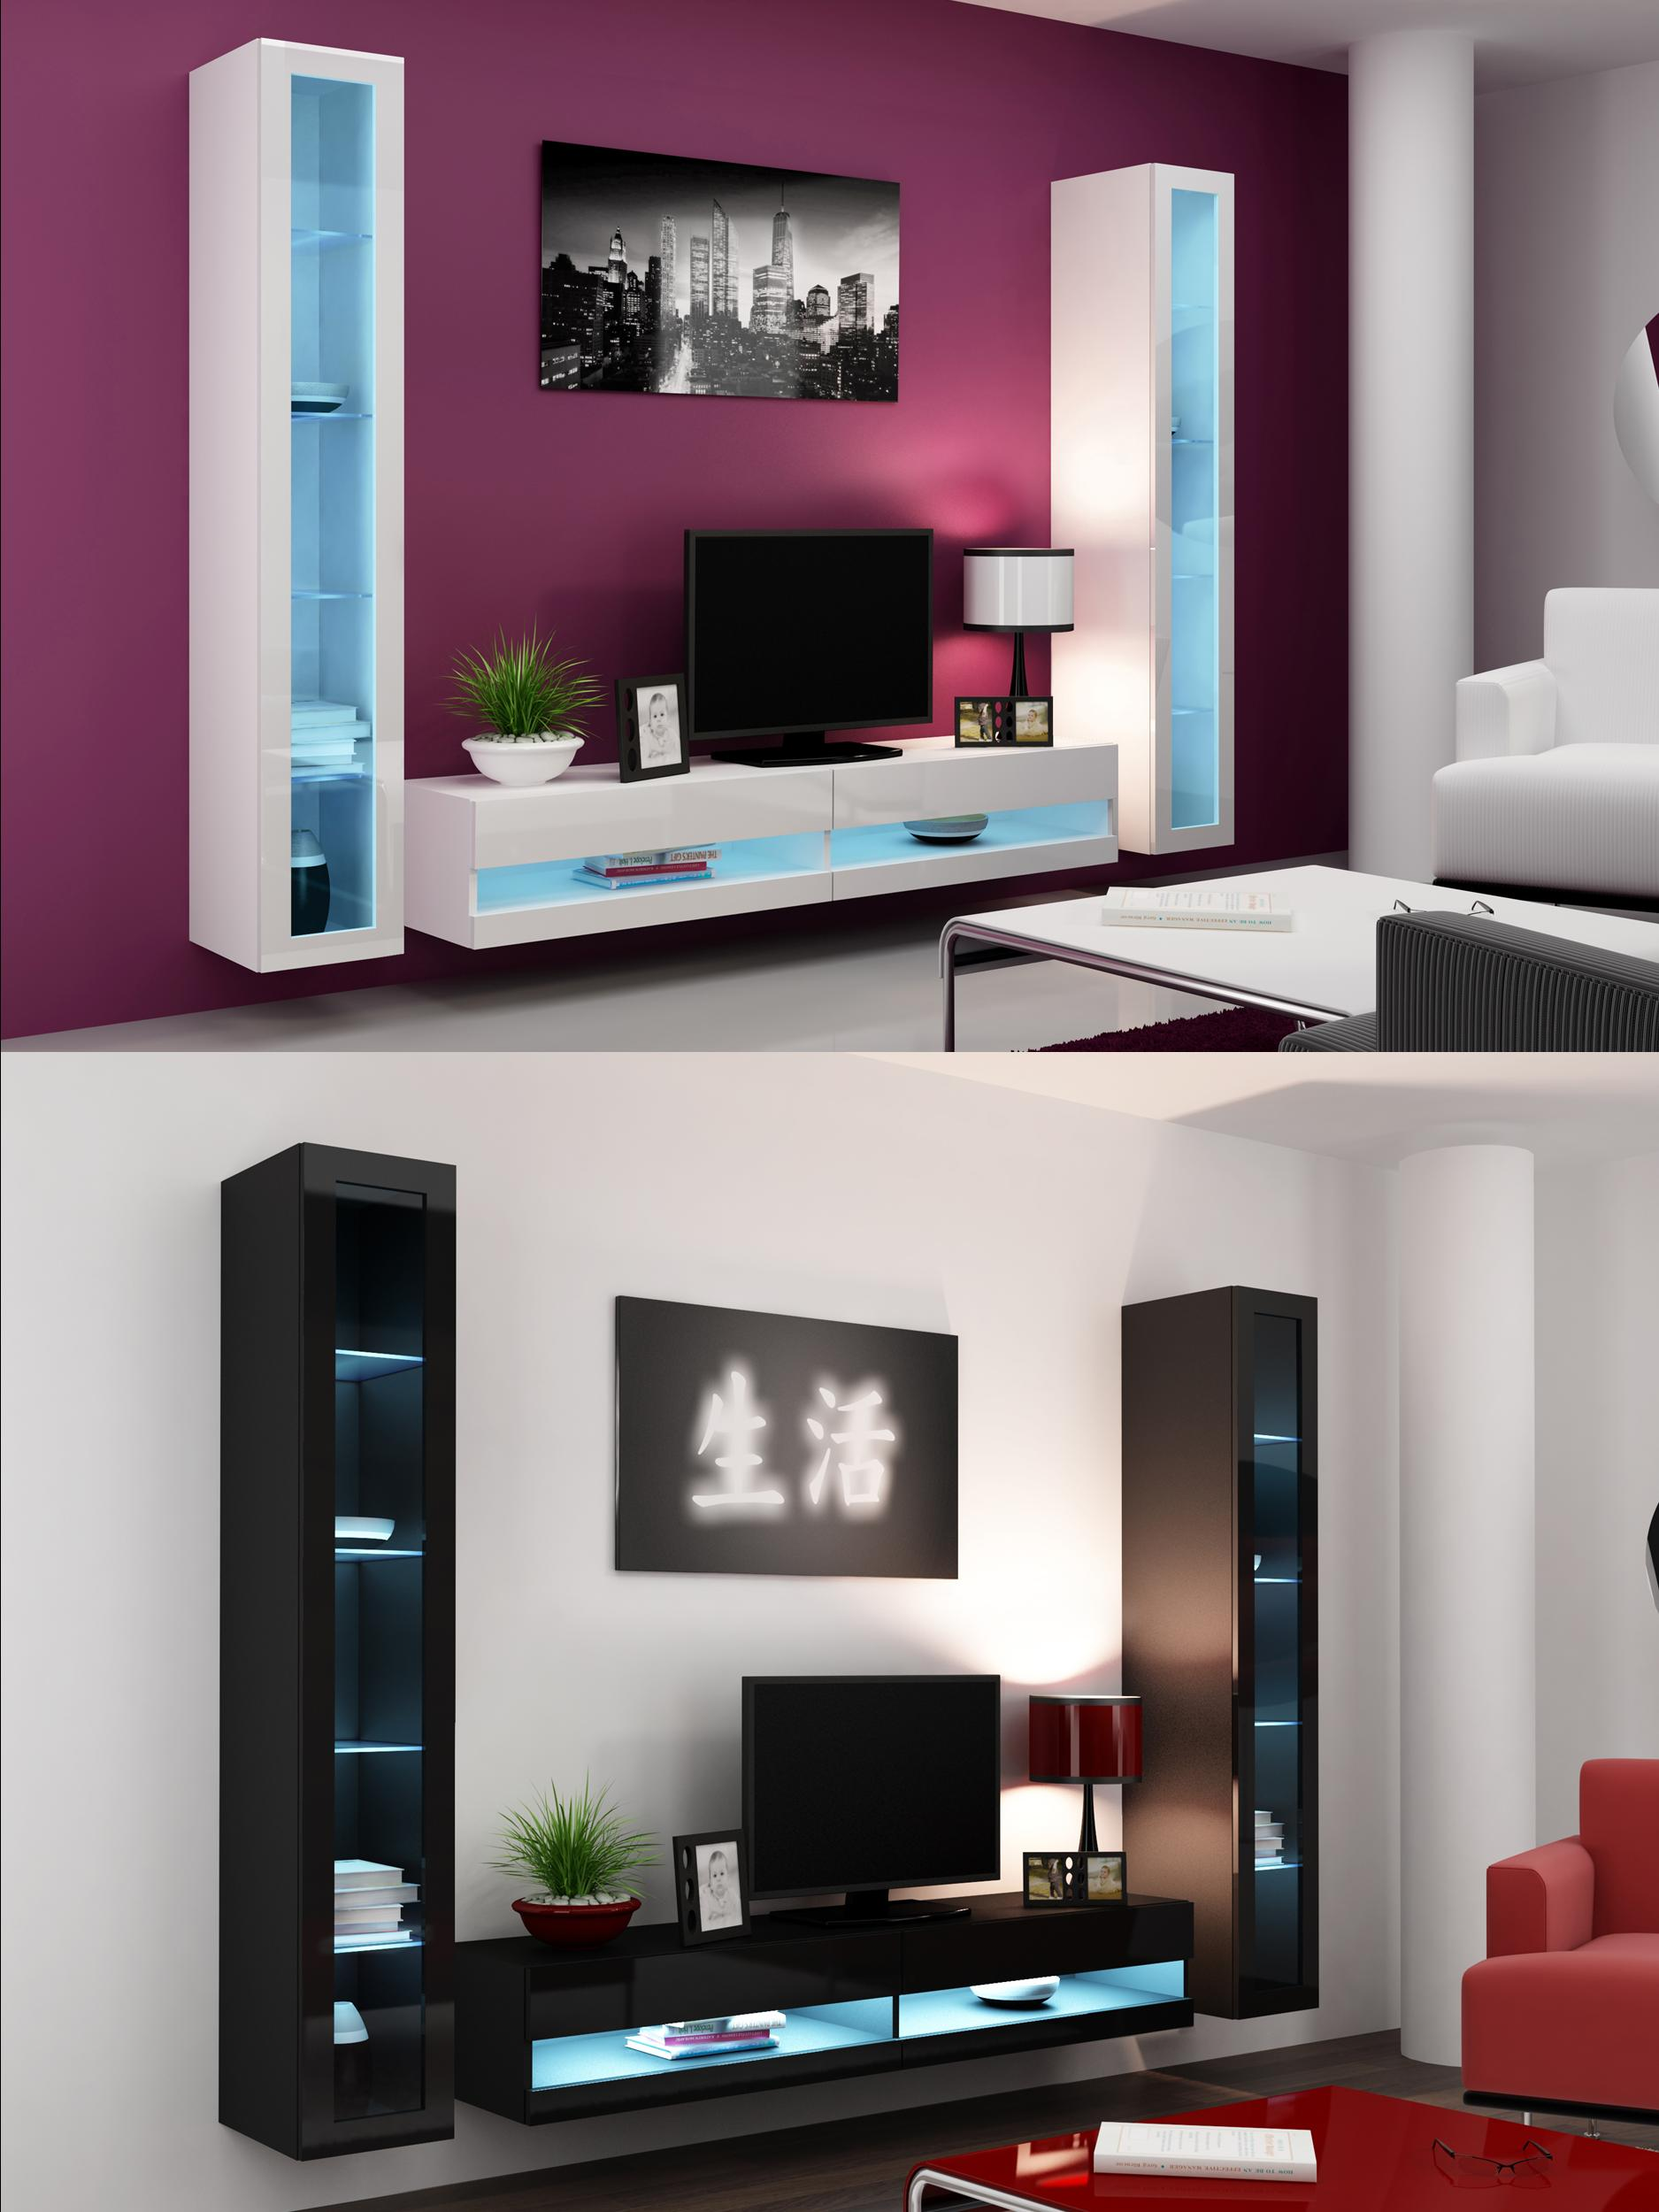 Tv Unit In Living Room: High Gloss Living Room Set With LED Lights, TV Stand, Wall